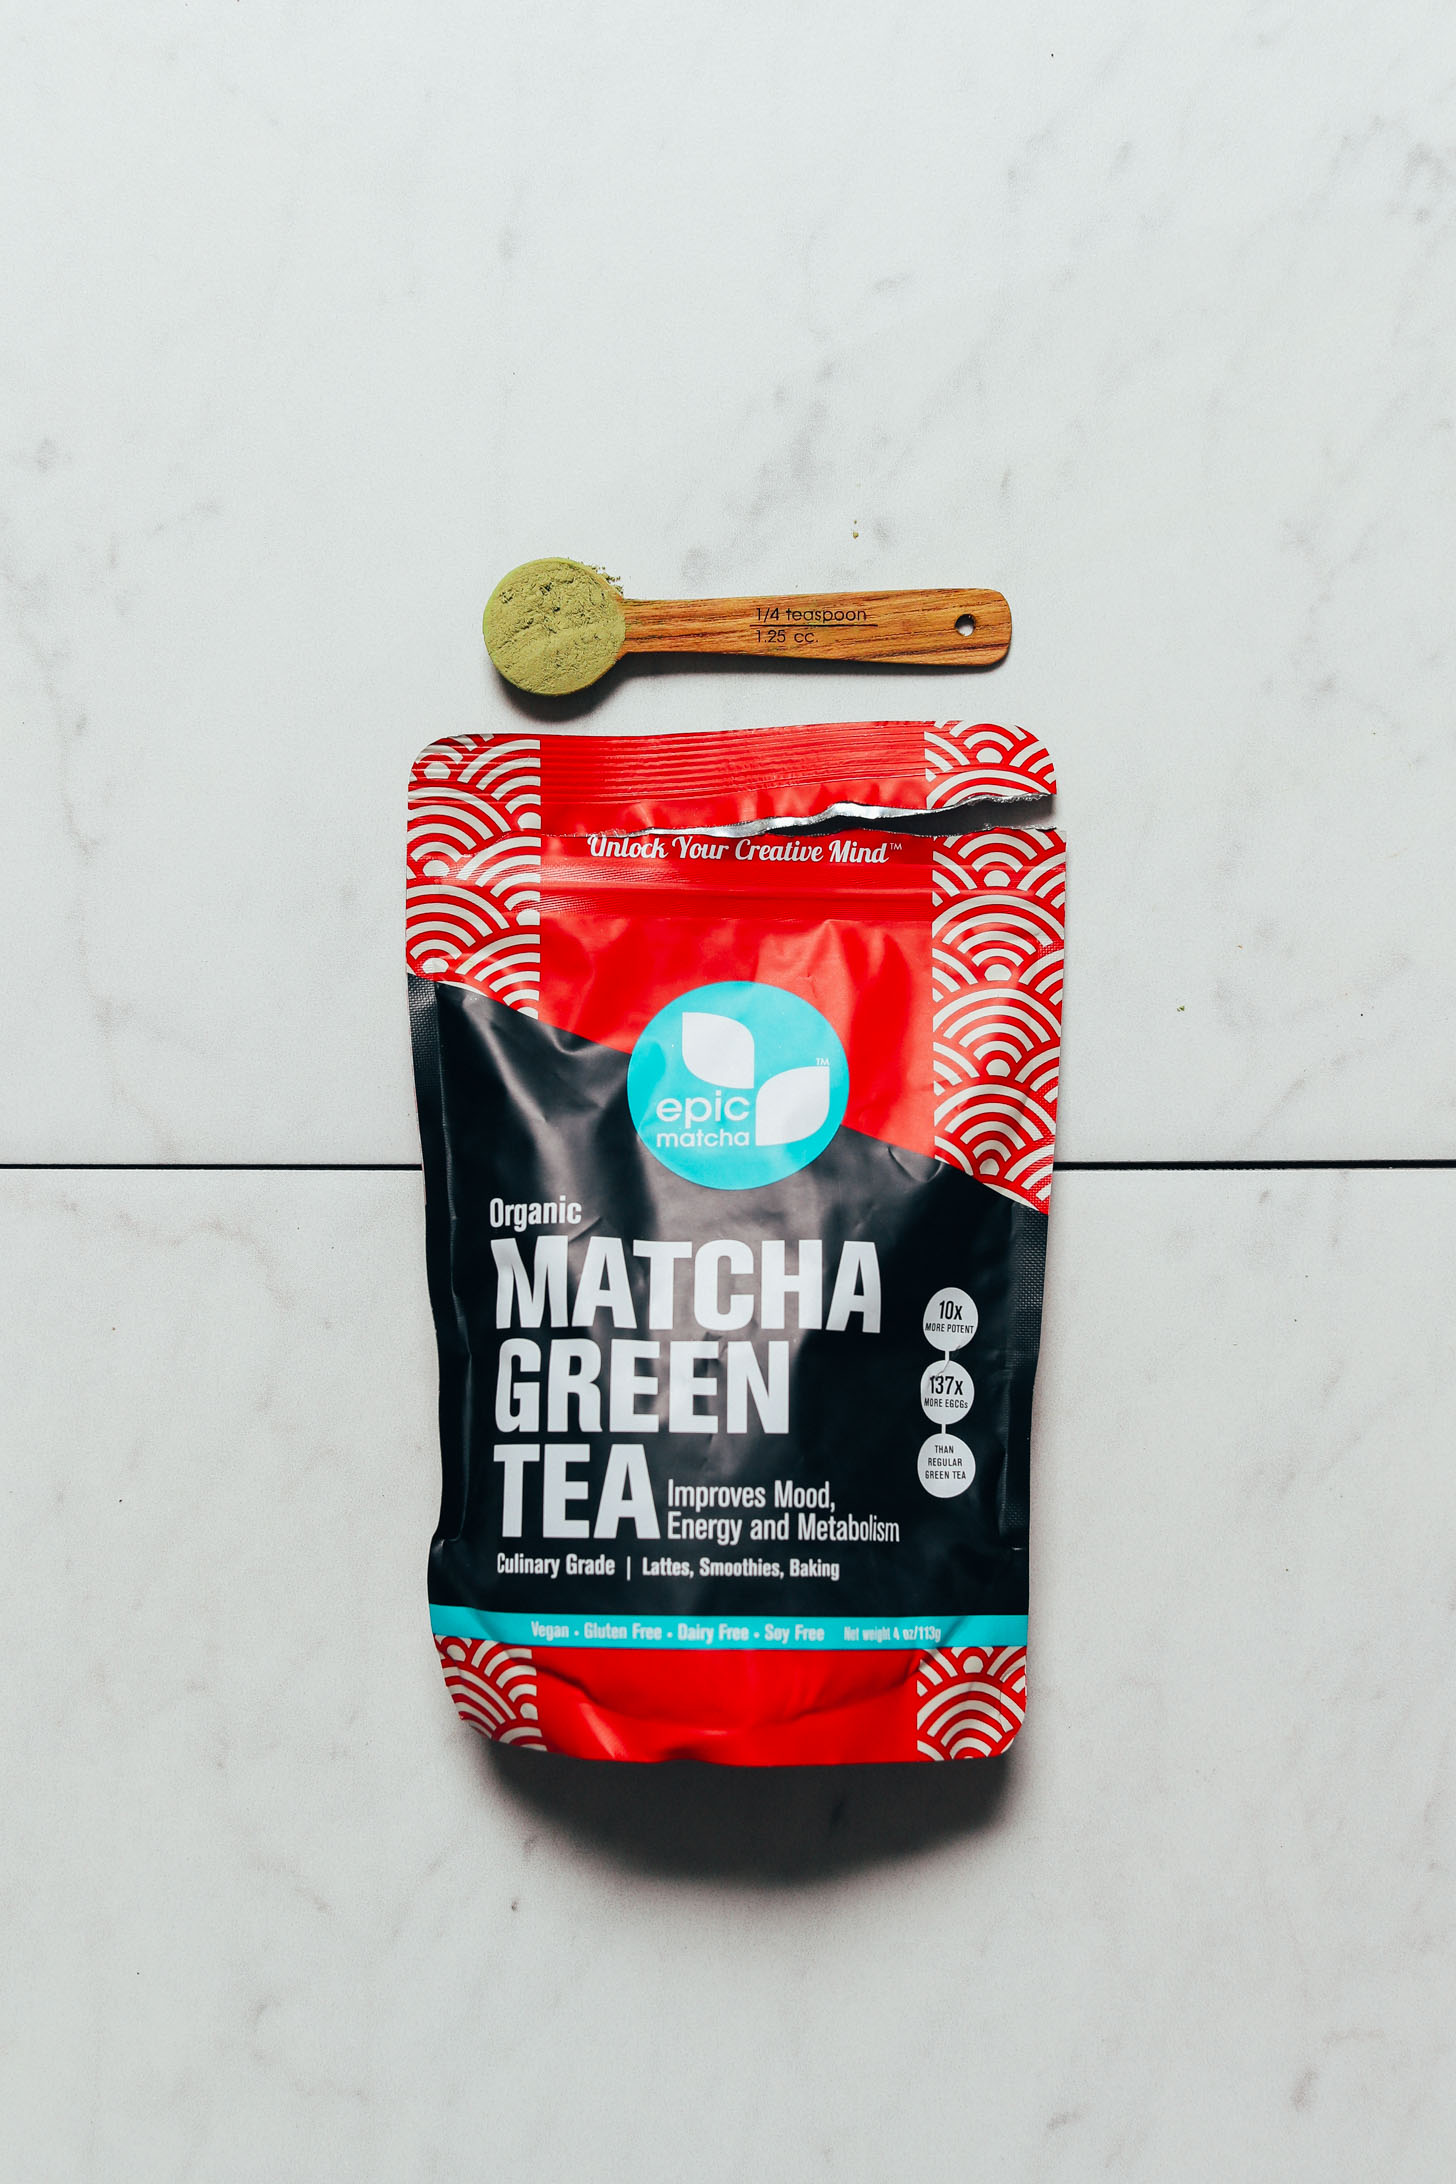 Package of Epic Matcha for our roundup of the best brands of matcha